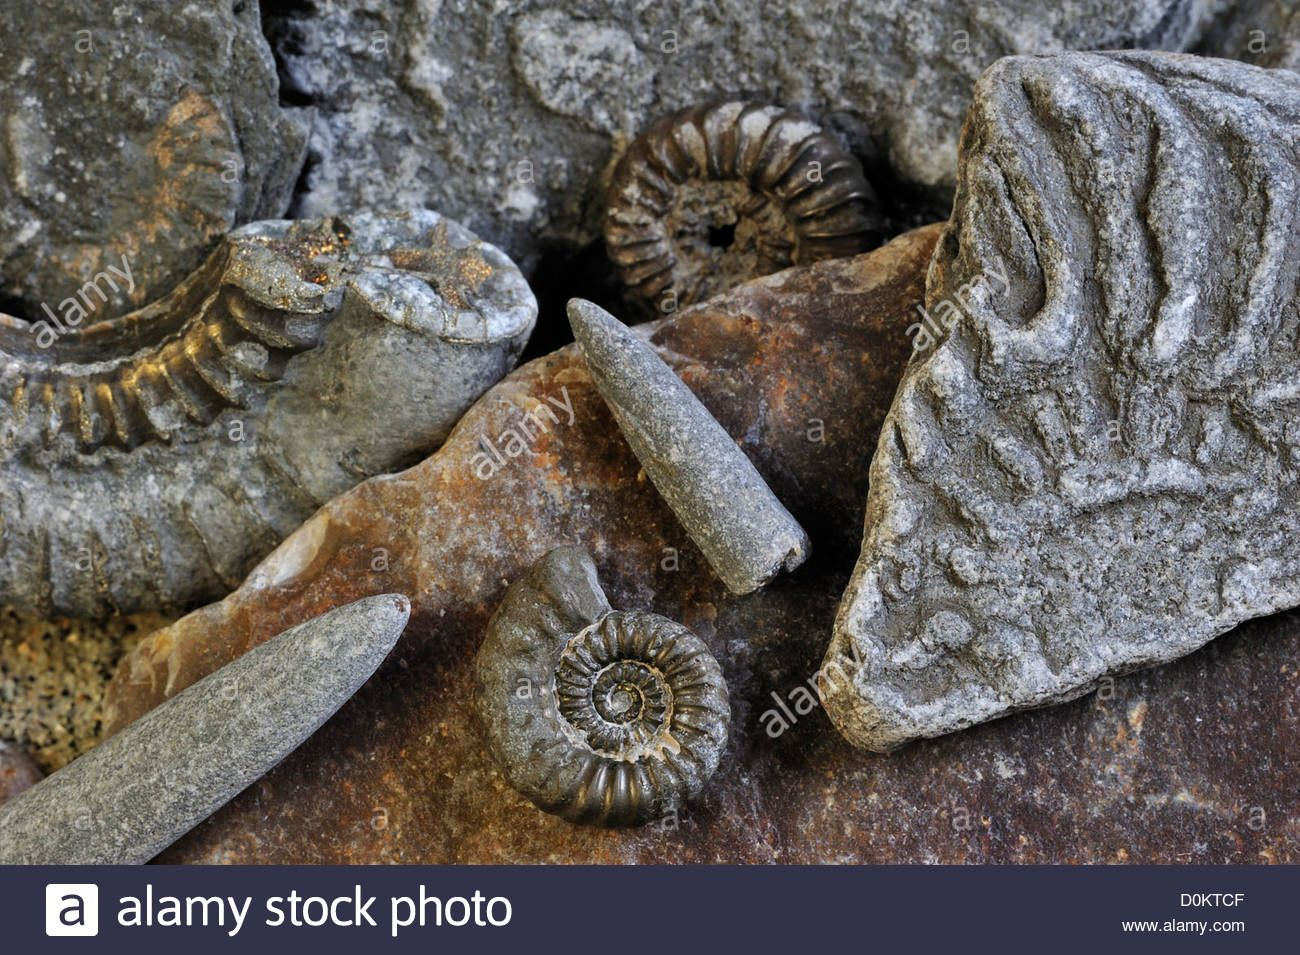 Fossils Like Fossil Guards Of Belemnites And Ammonites On